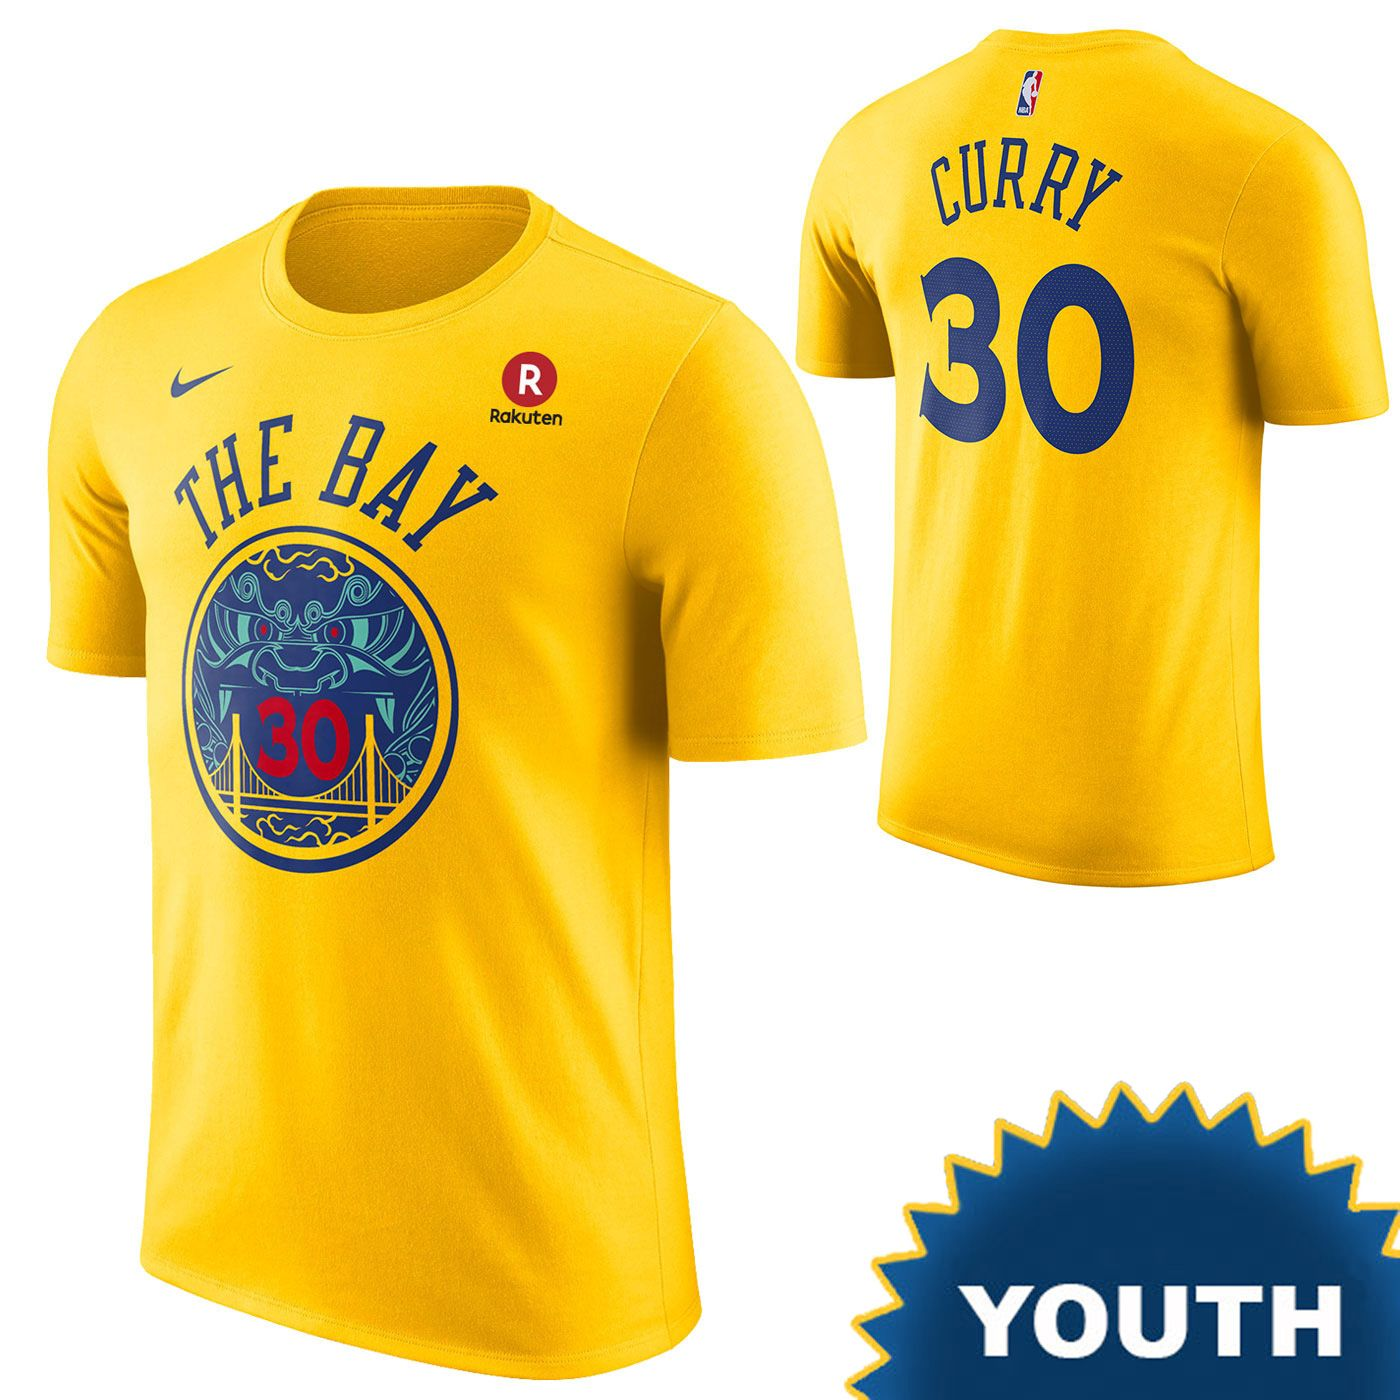 best loved 3964f 7c9c0 Golden State Warriors Nike Dri-FIT Youth City Edition ...